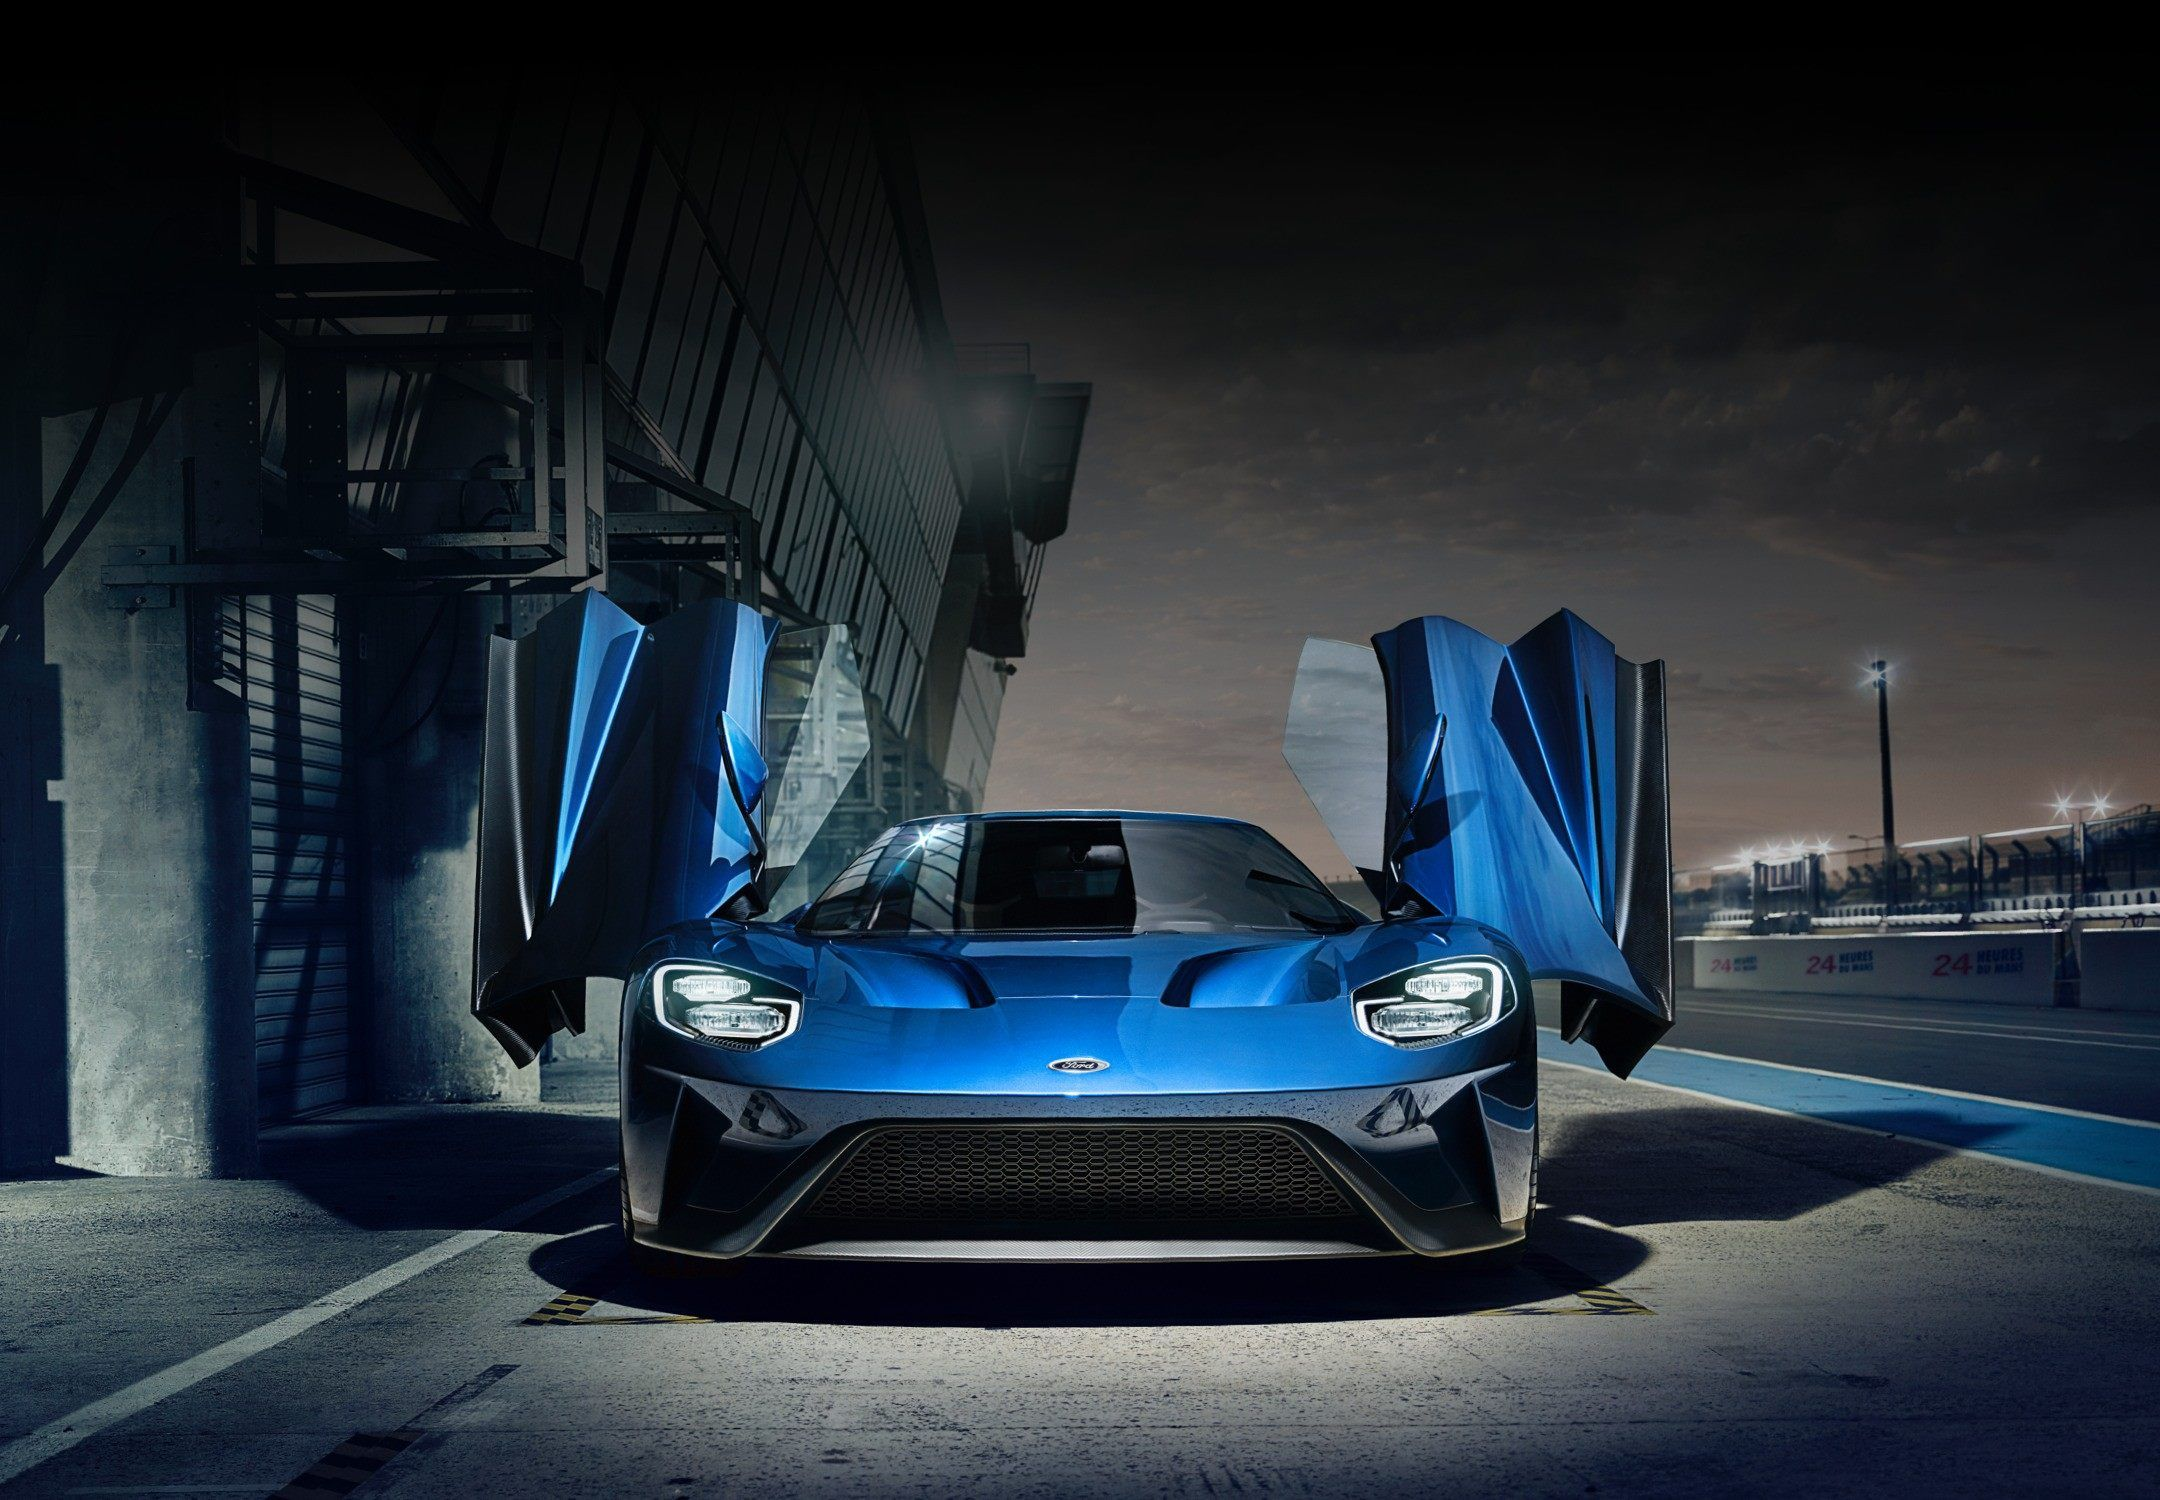 Ford G T At Racetrack With Doors Open Ford Gt Ford Sport Ford Sports Cars